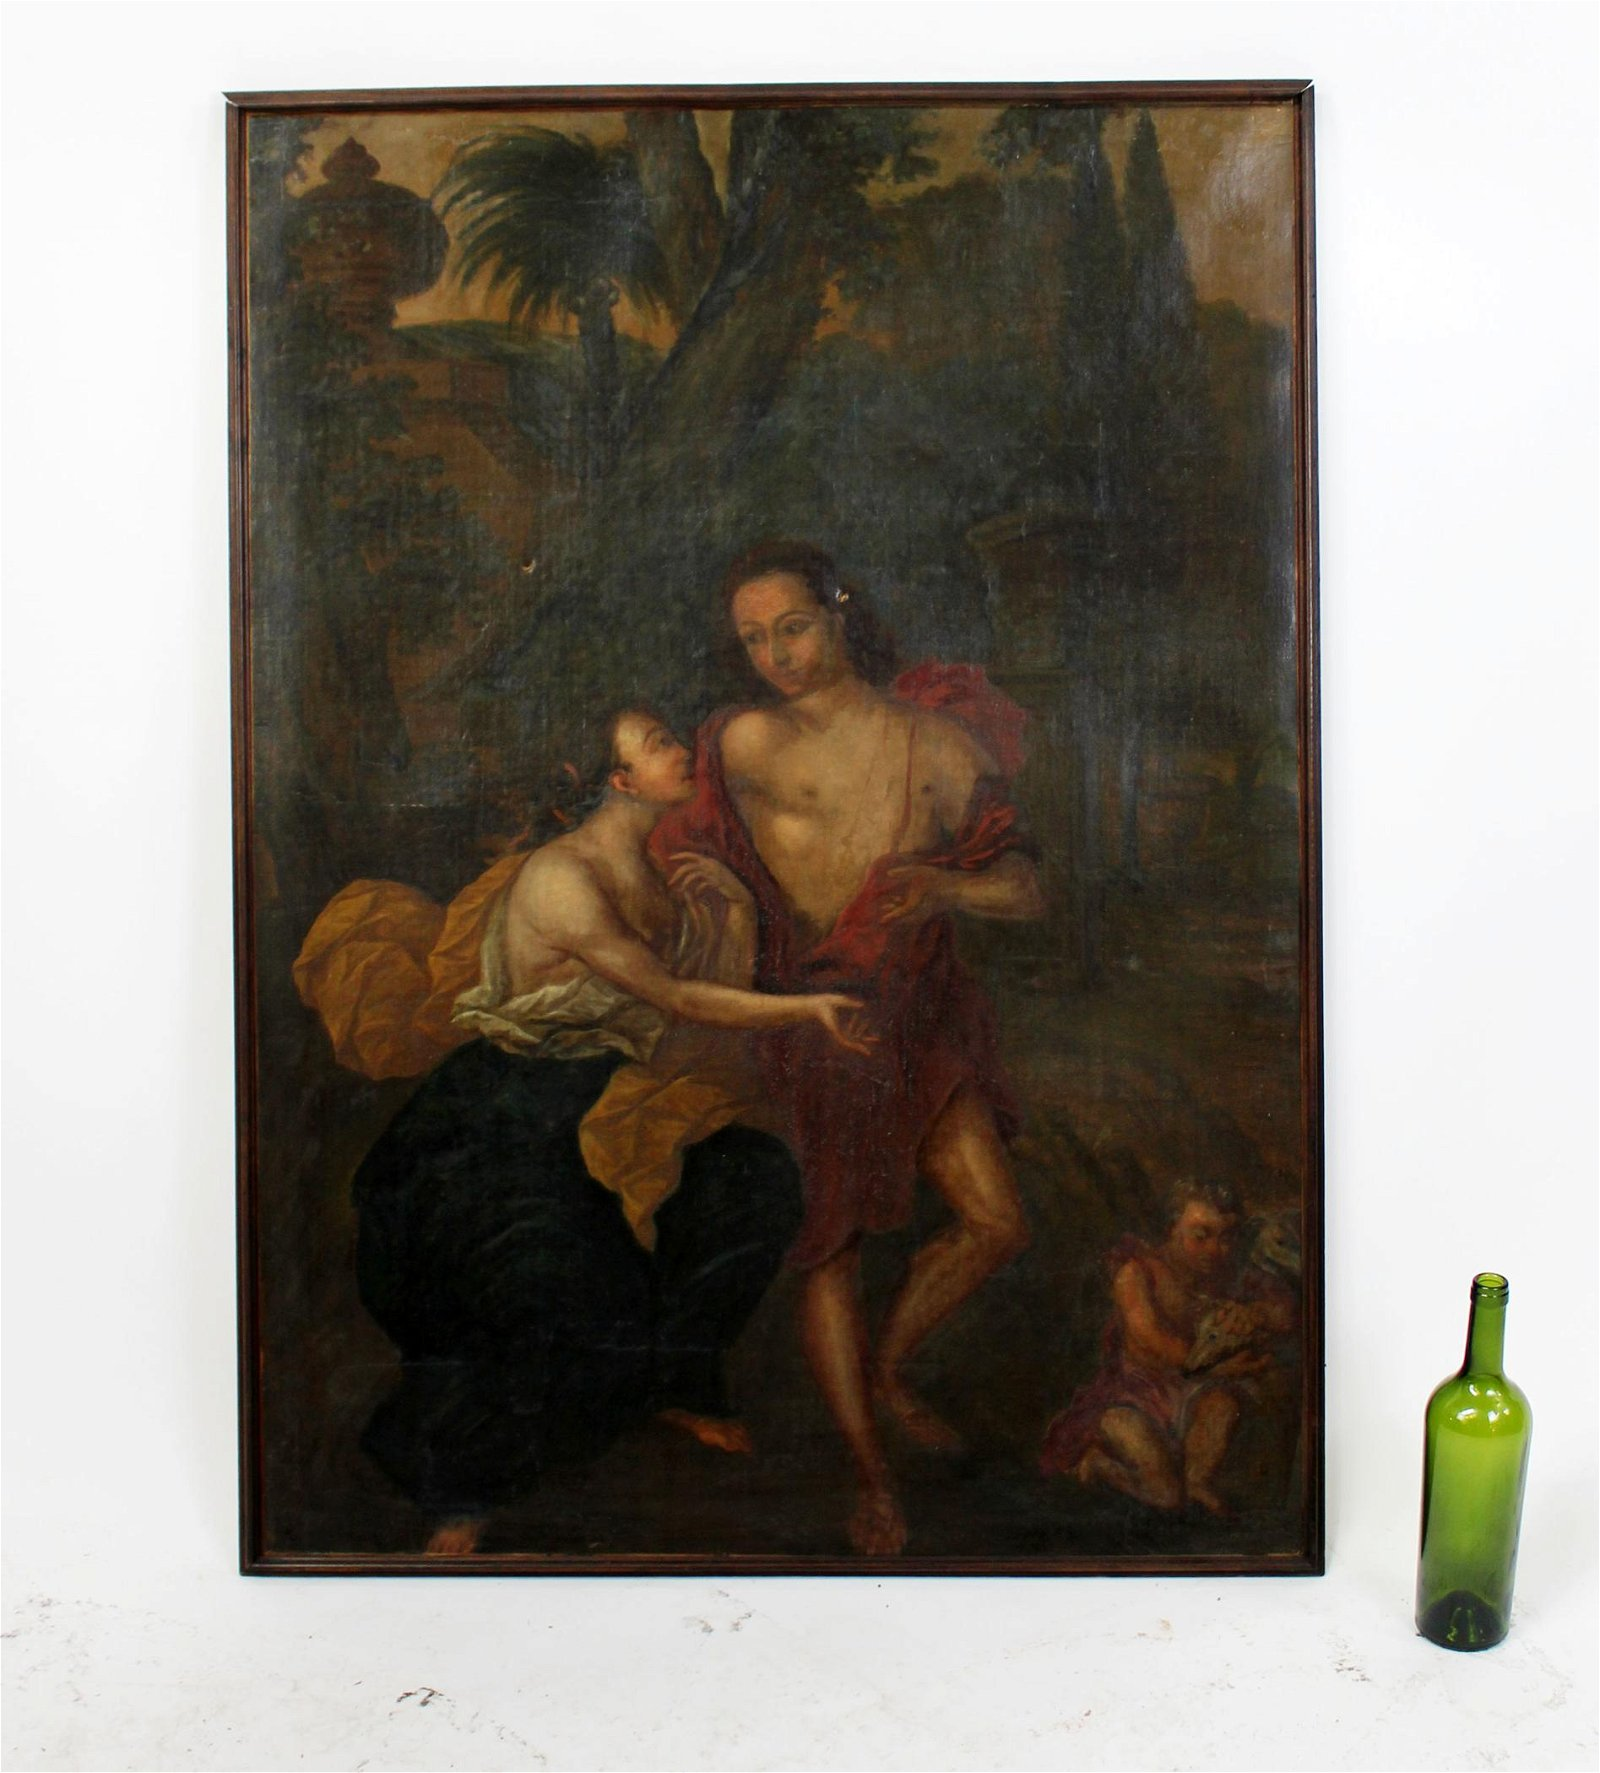 Flemish allegorical oil on canvas painting